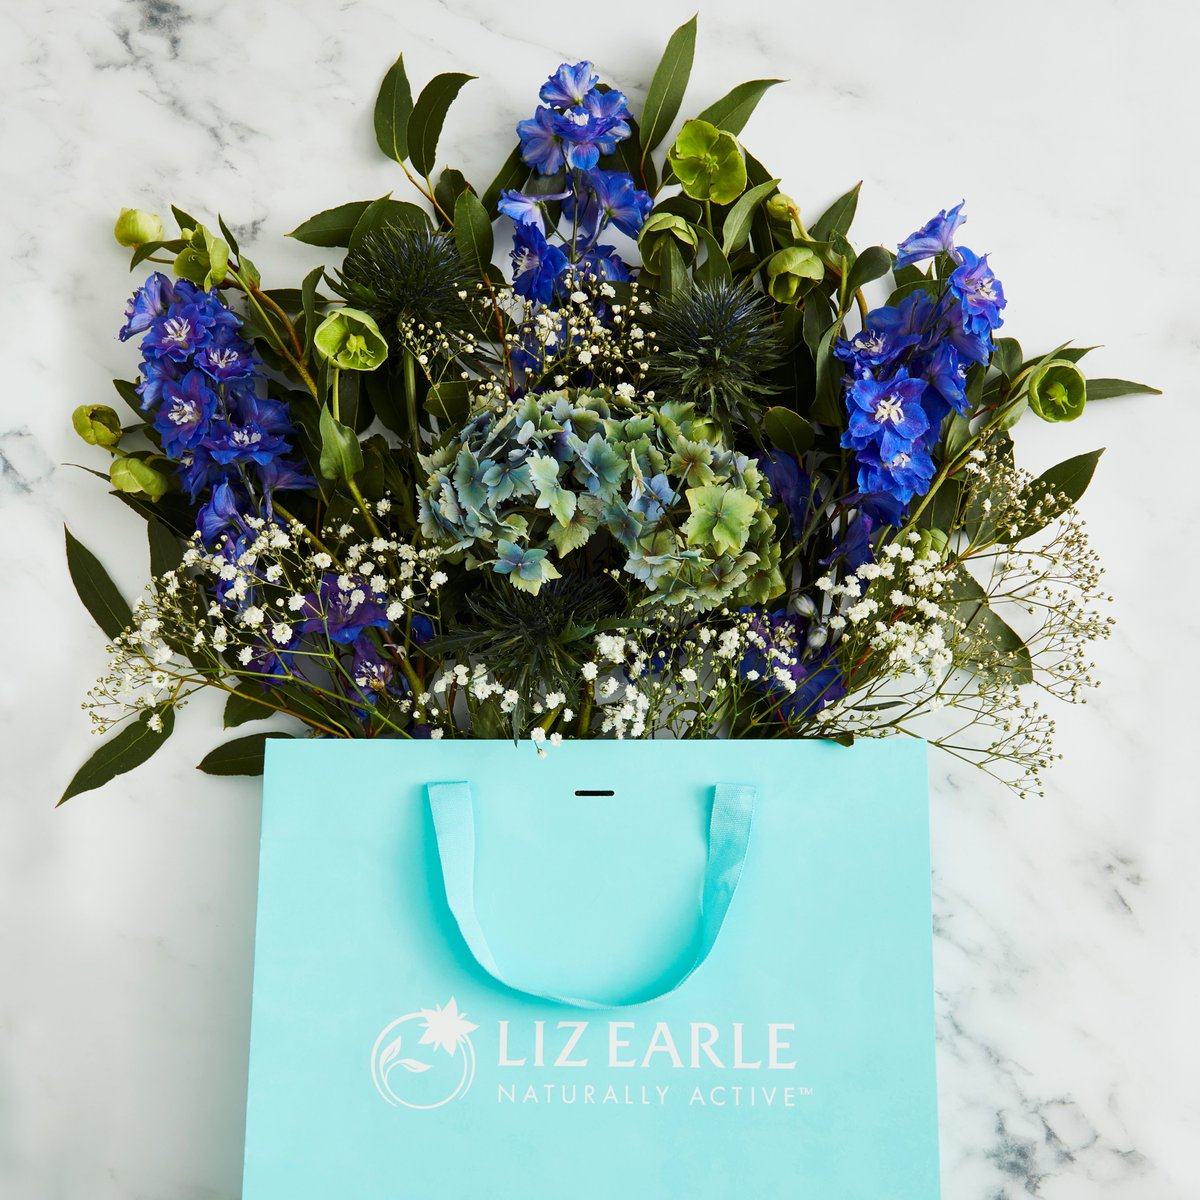 The health and wellbeing of our customers and employees is our 1st priority. In these uncertain times, we have suspended our skincare consultations – we're sorry for any disappointment caused. Please take care of yourselves – we're in this together 💙 https://t.co/Al3CExX64a